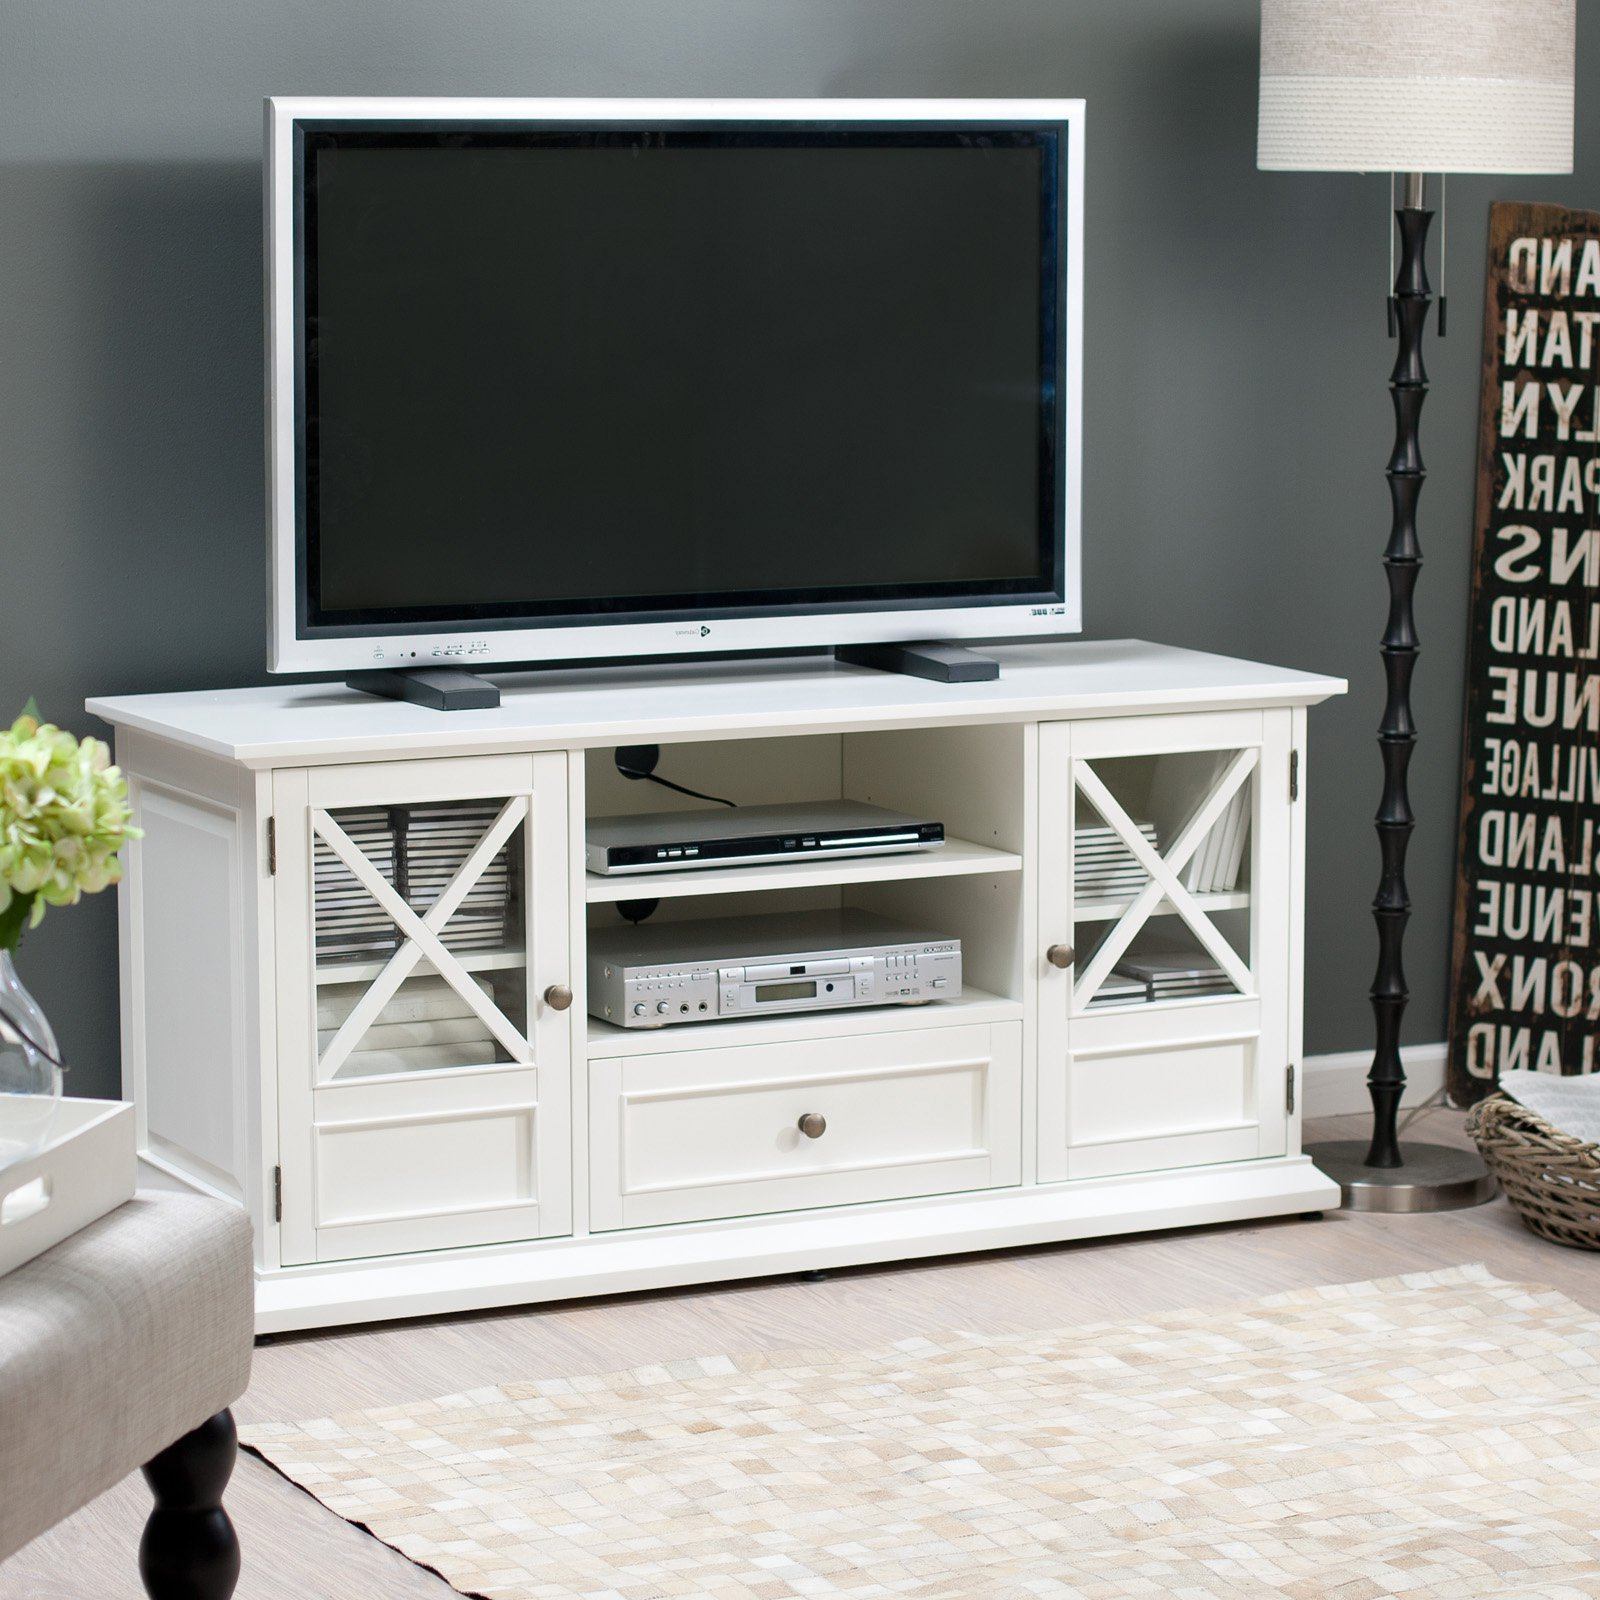 Belham Living Hampton Tv Stand – White – Walmart Intended For Famous Cheap White Tv Stands (View 3 of 20)